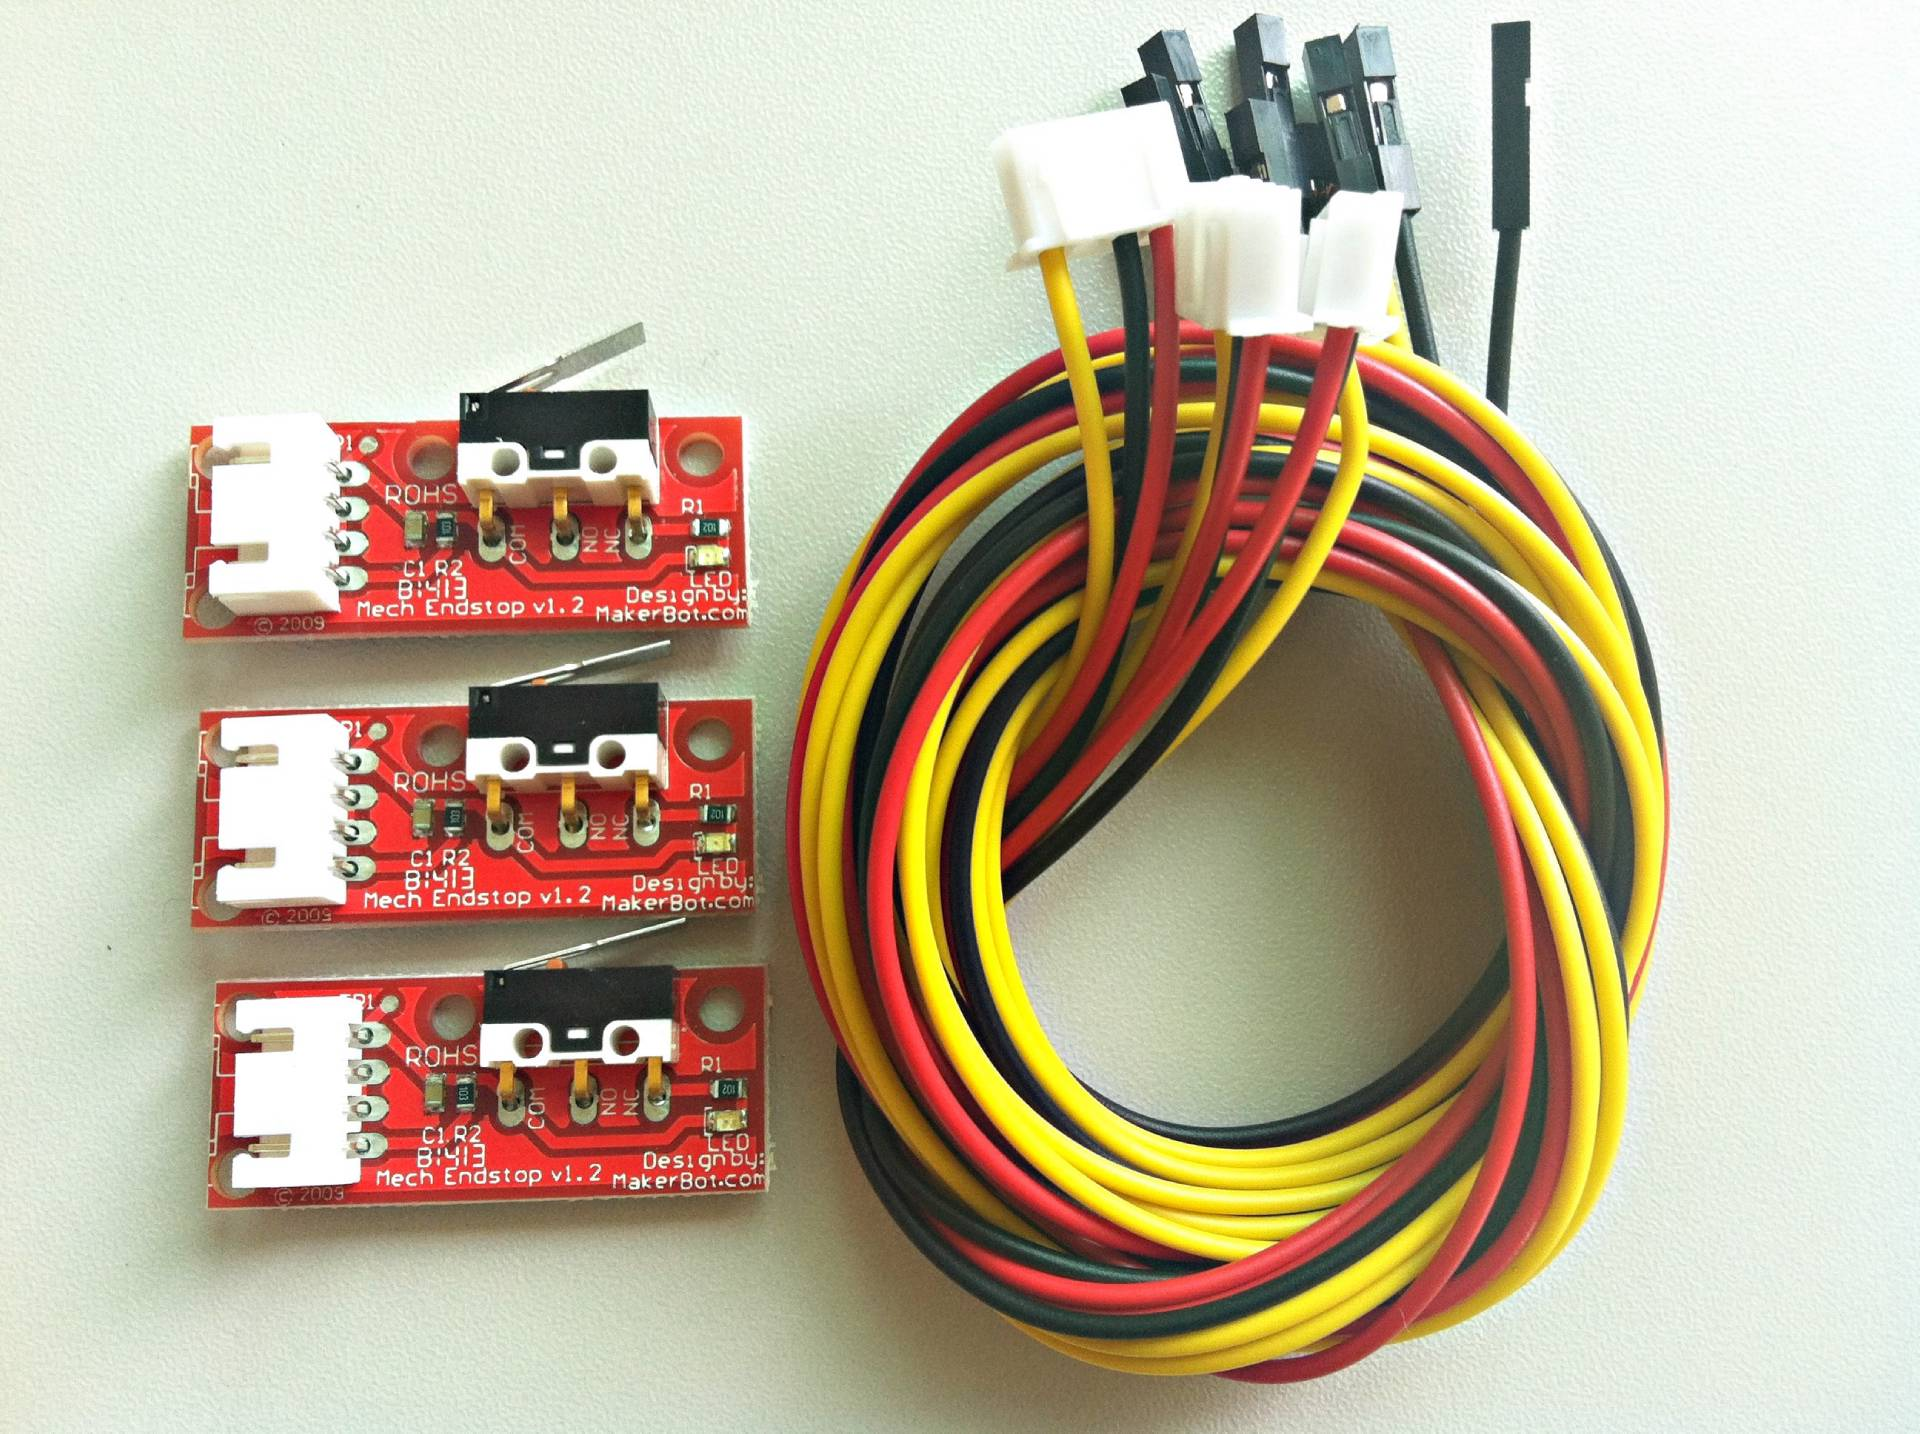 3 Pcs Mechanical Endstop Module For 3d Printer Reprap Prusa I3 Printers With Wired Network Cable Diagram The